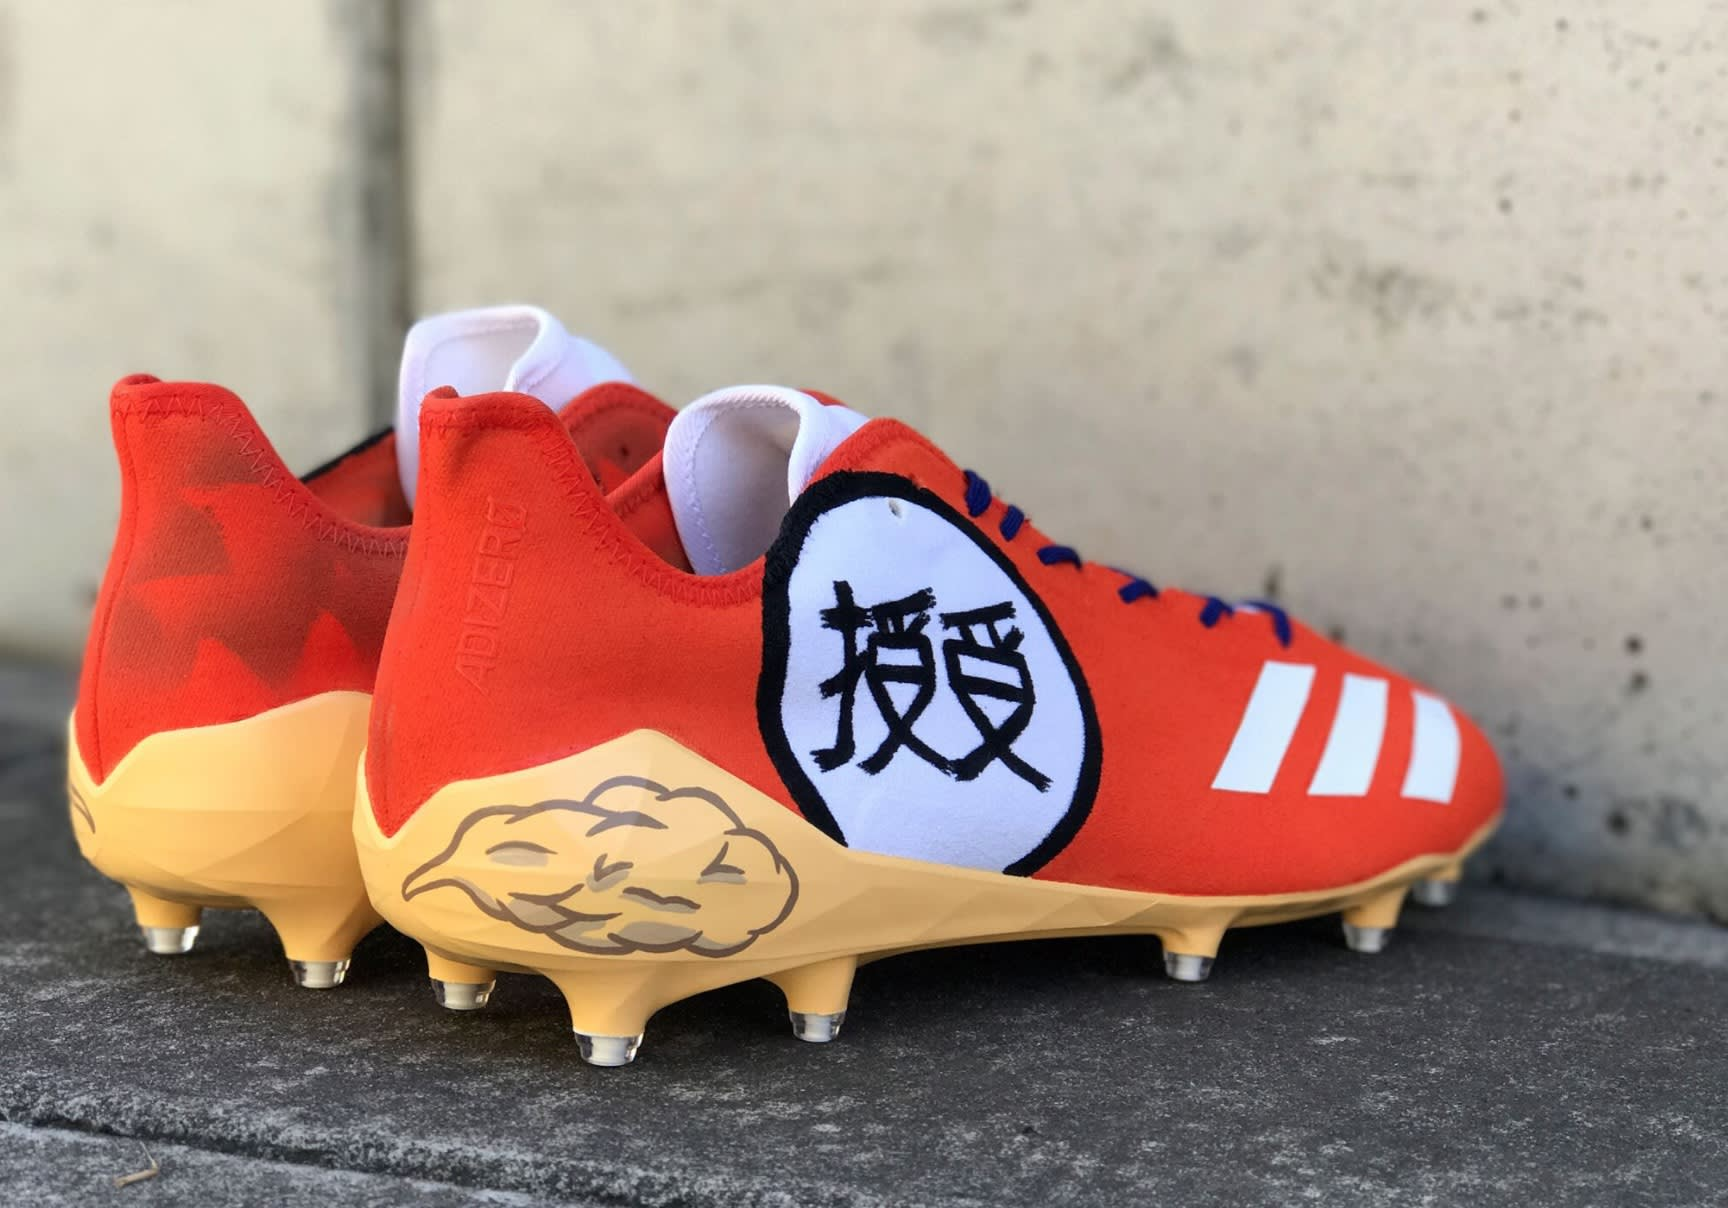 JuJu Smith-Schuster Dragon Ball Z Goku Cleats (2)